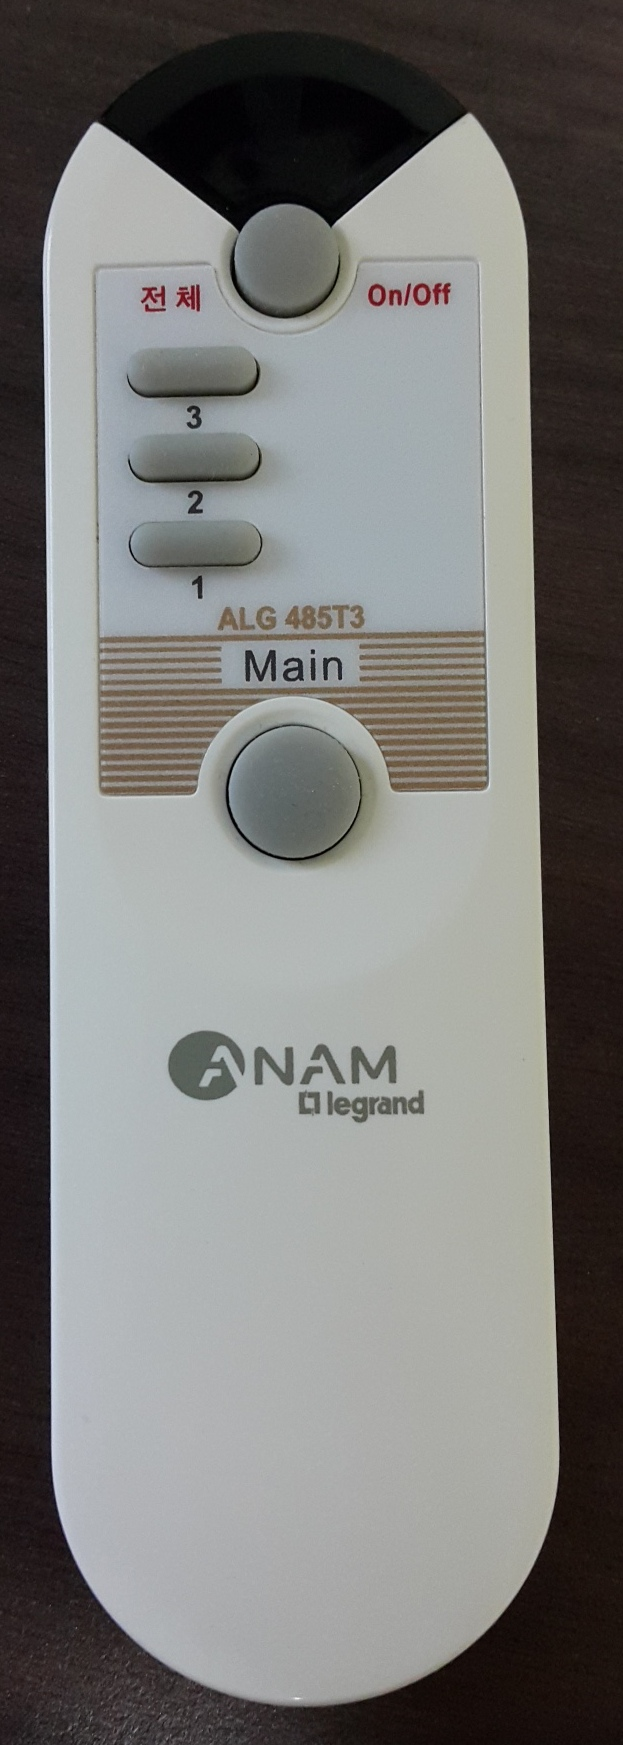 ANAM_ALG485T3_XFFFF 003F_LAMP_cover.png